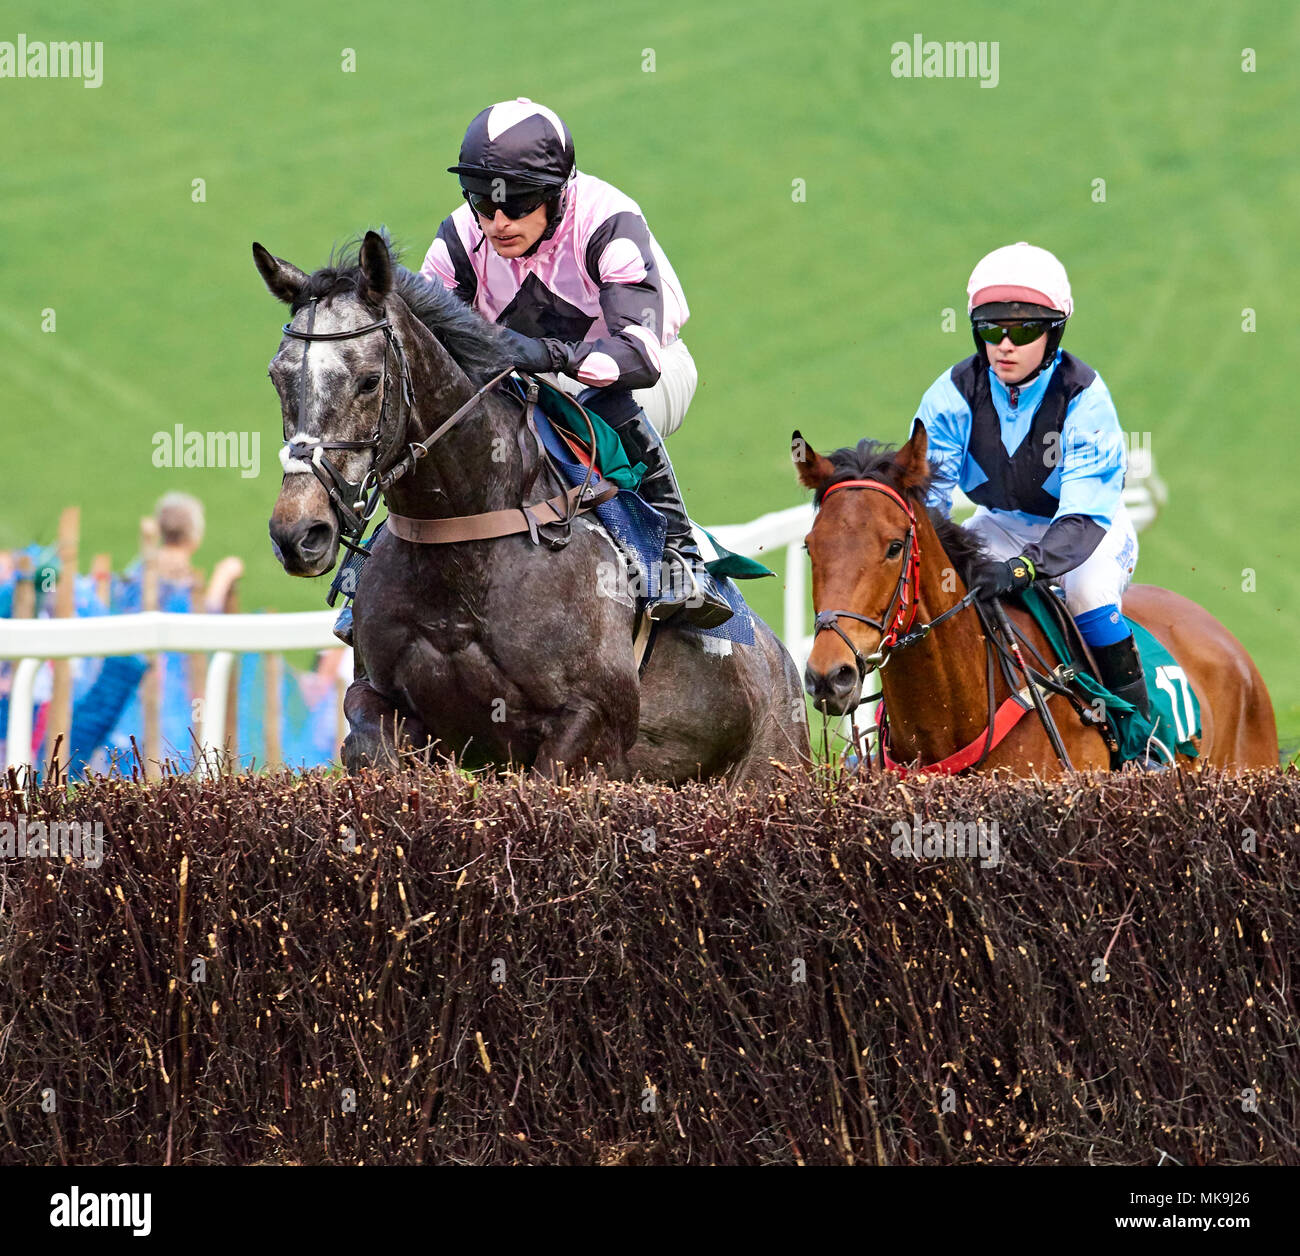 Horse and jockey jumping a fence during a point-to-point event - Stock Image